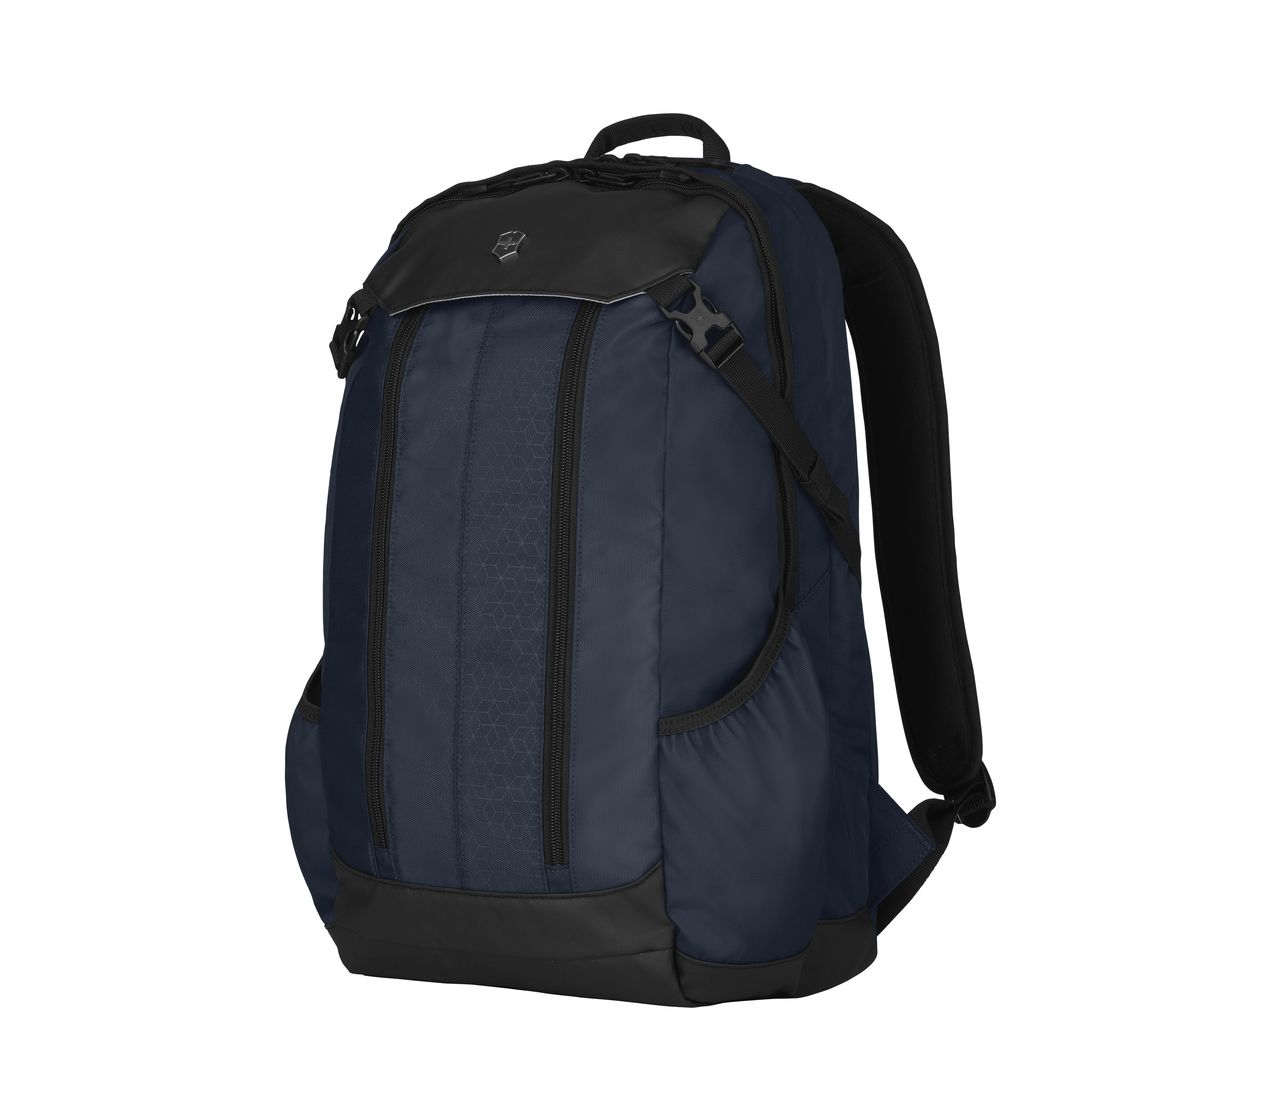 Altmont Original Slimline Laptop Backpack-606740